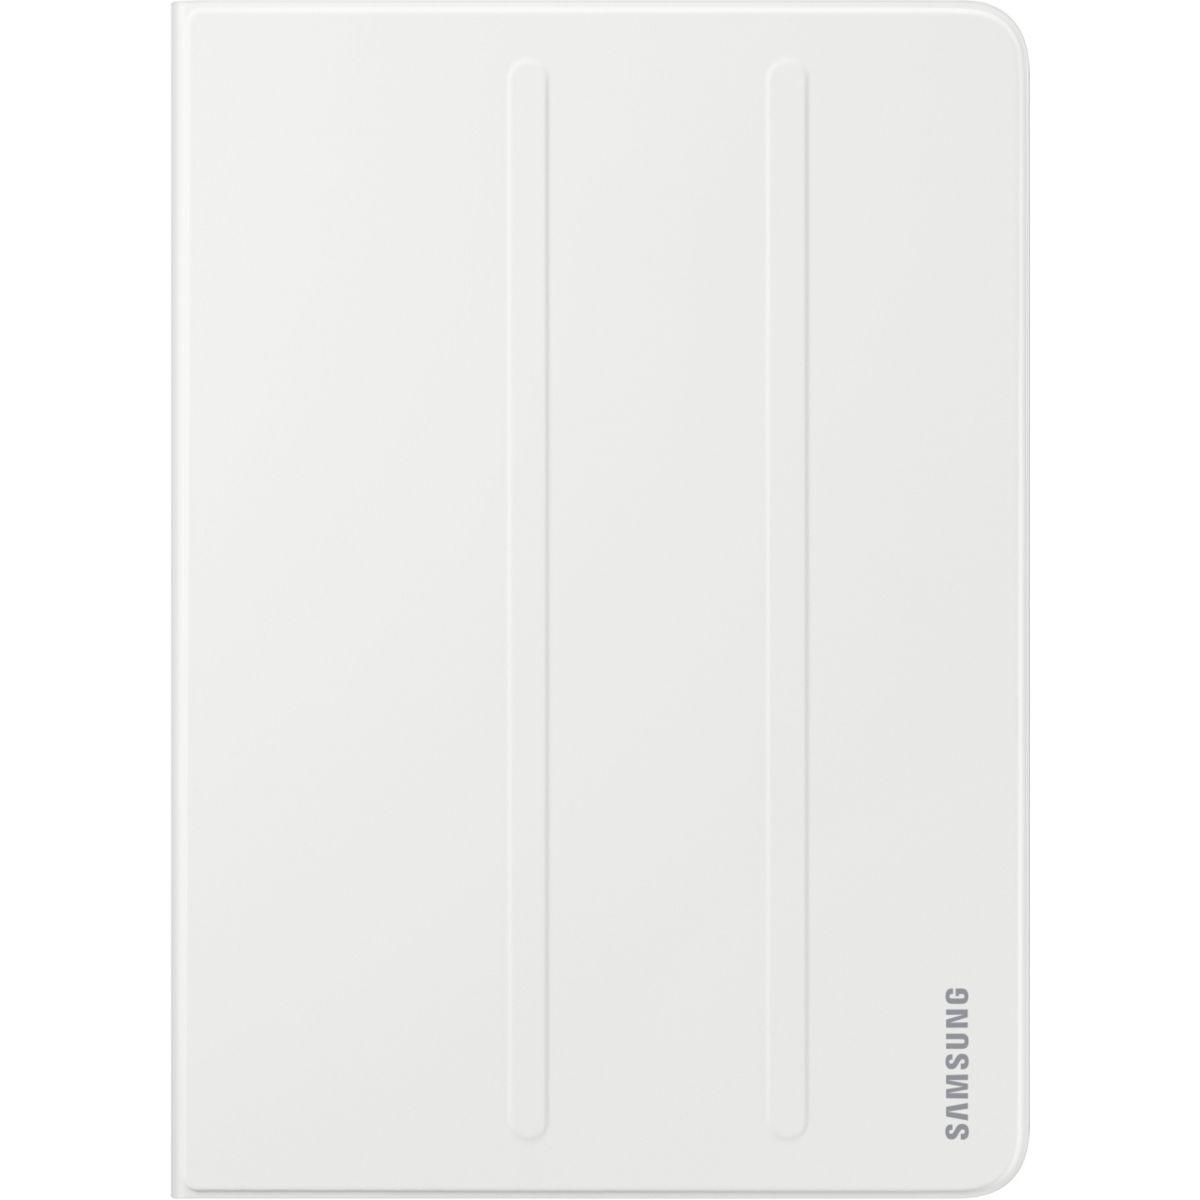 Etui samsung book cover tab s3 blanc - 20% de remise immédiate avec le code : cool20 (photo)